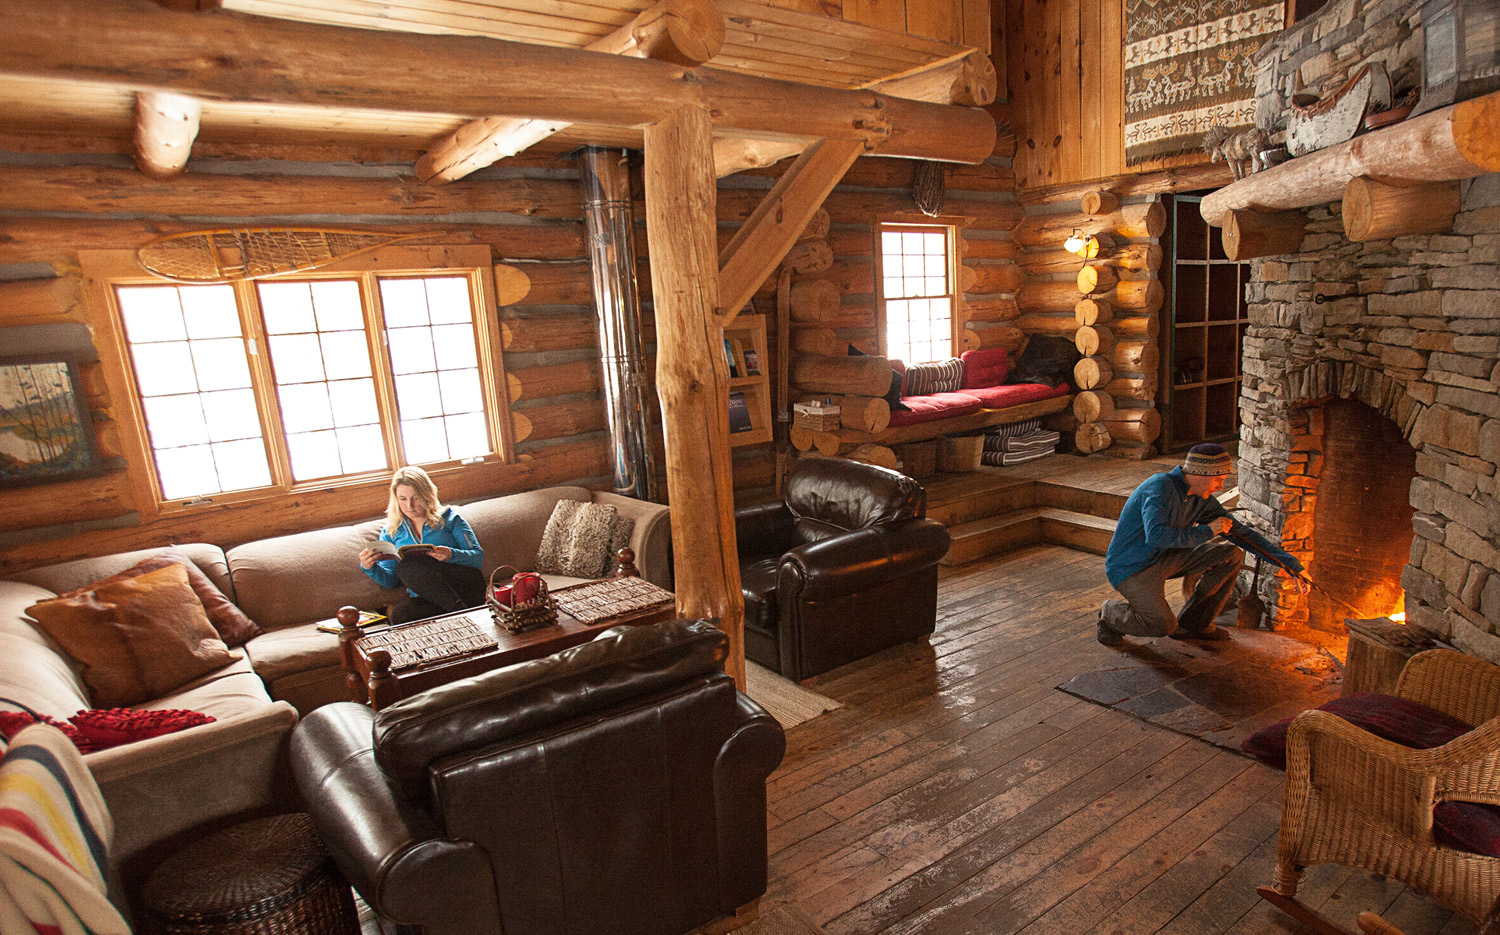 Cozy Log Cabins Cross Country Skiing And Snowshoeing